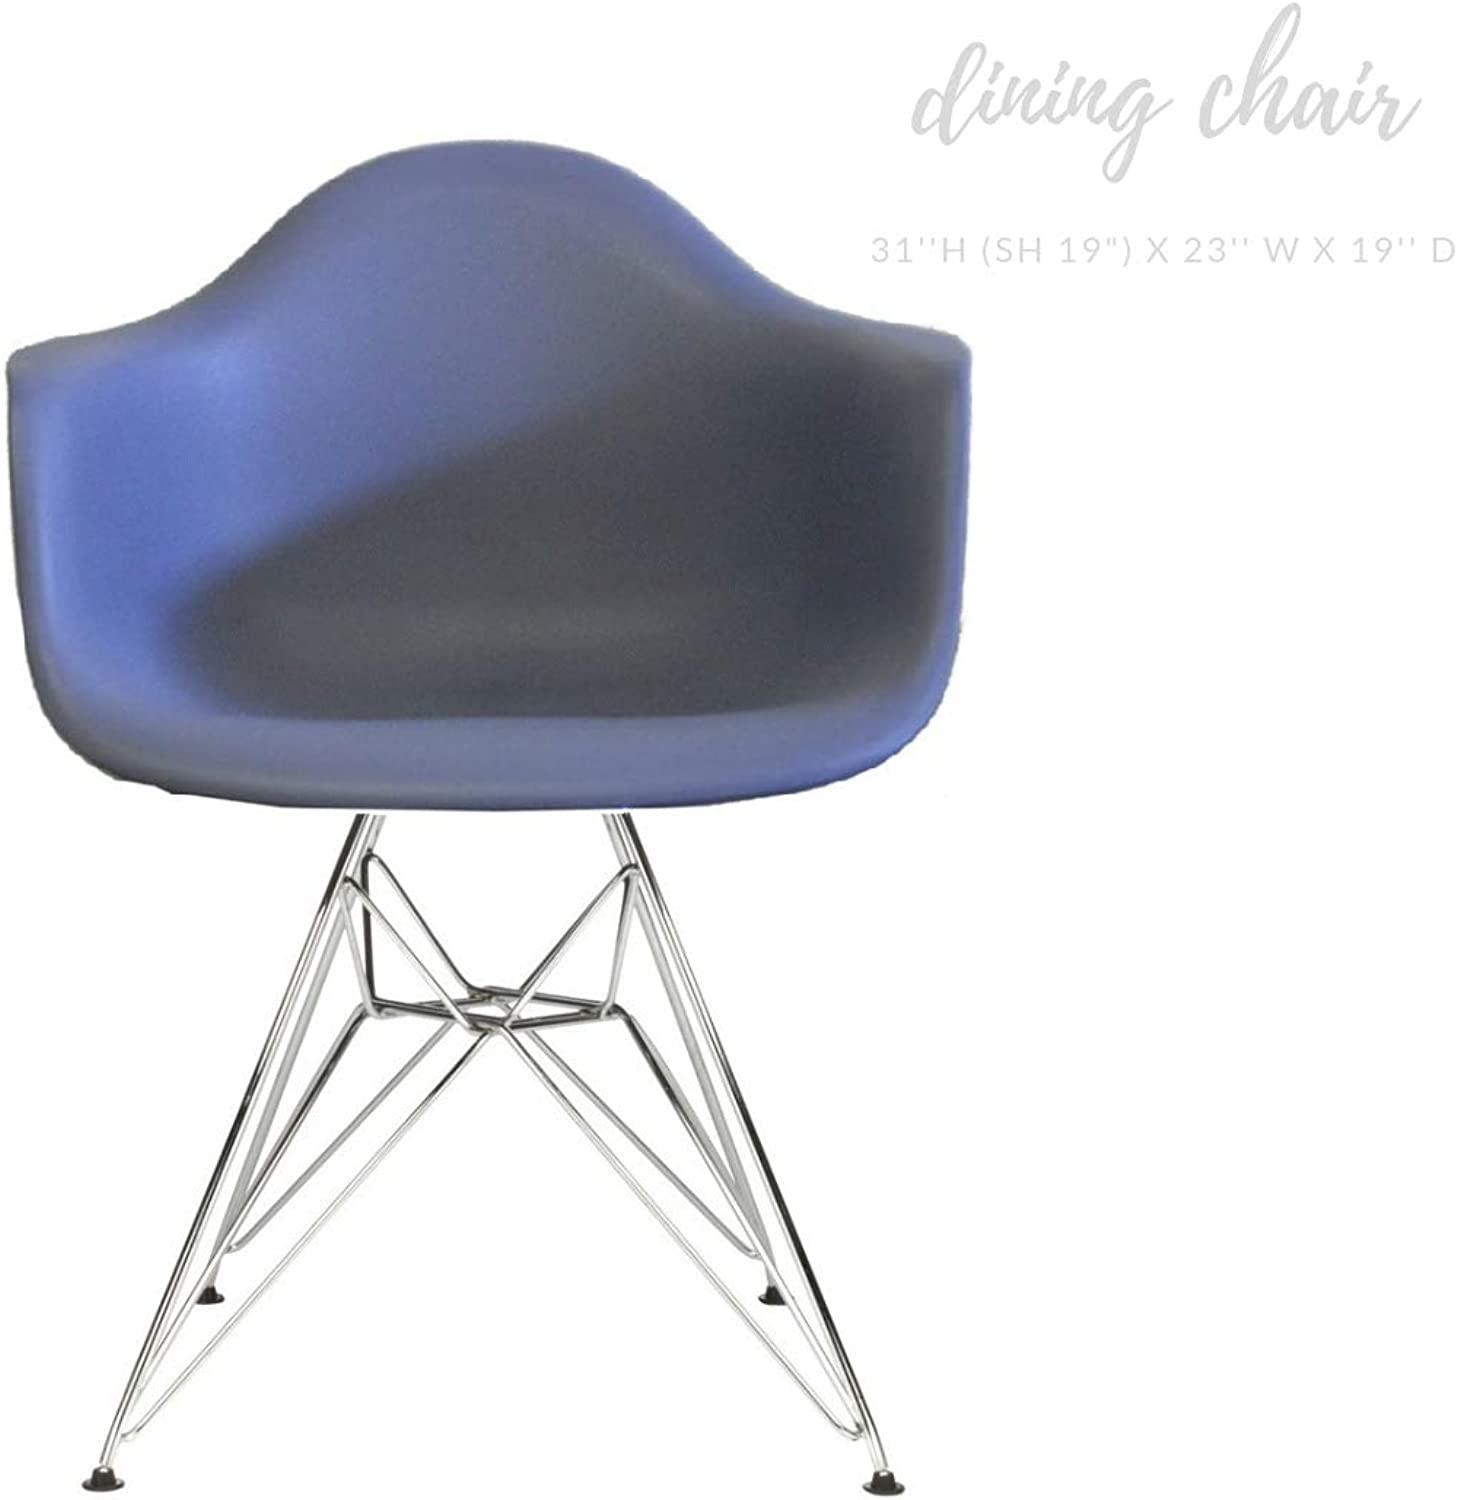 Take Me Home Furniture Eiffel Style Bucket Chair with Chrome Legs, Dark Grey, Dining Chair